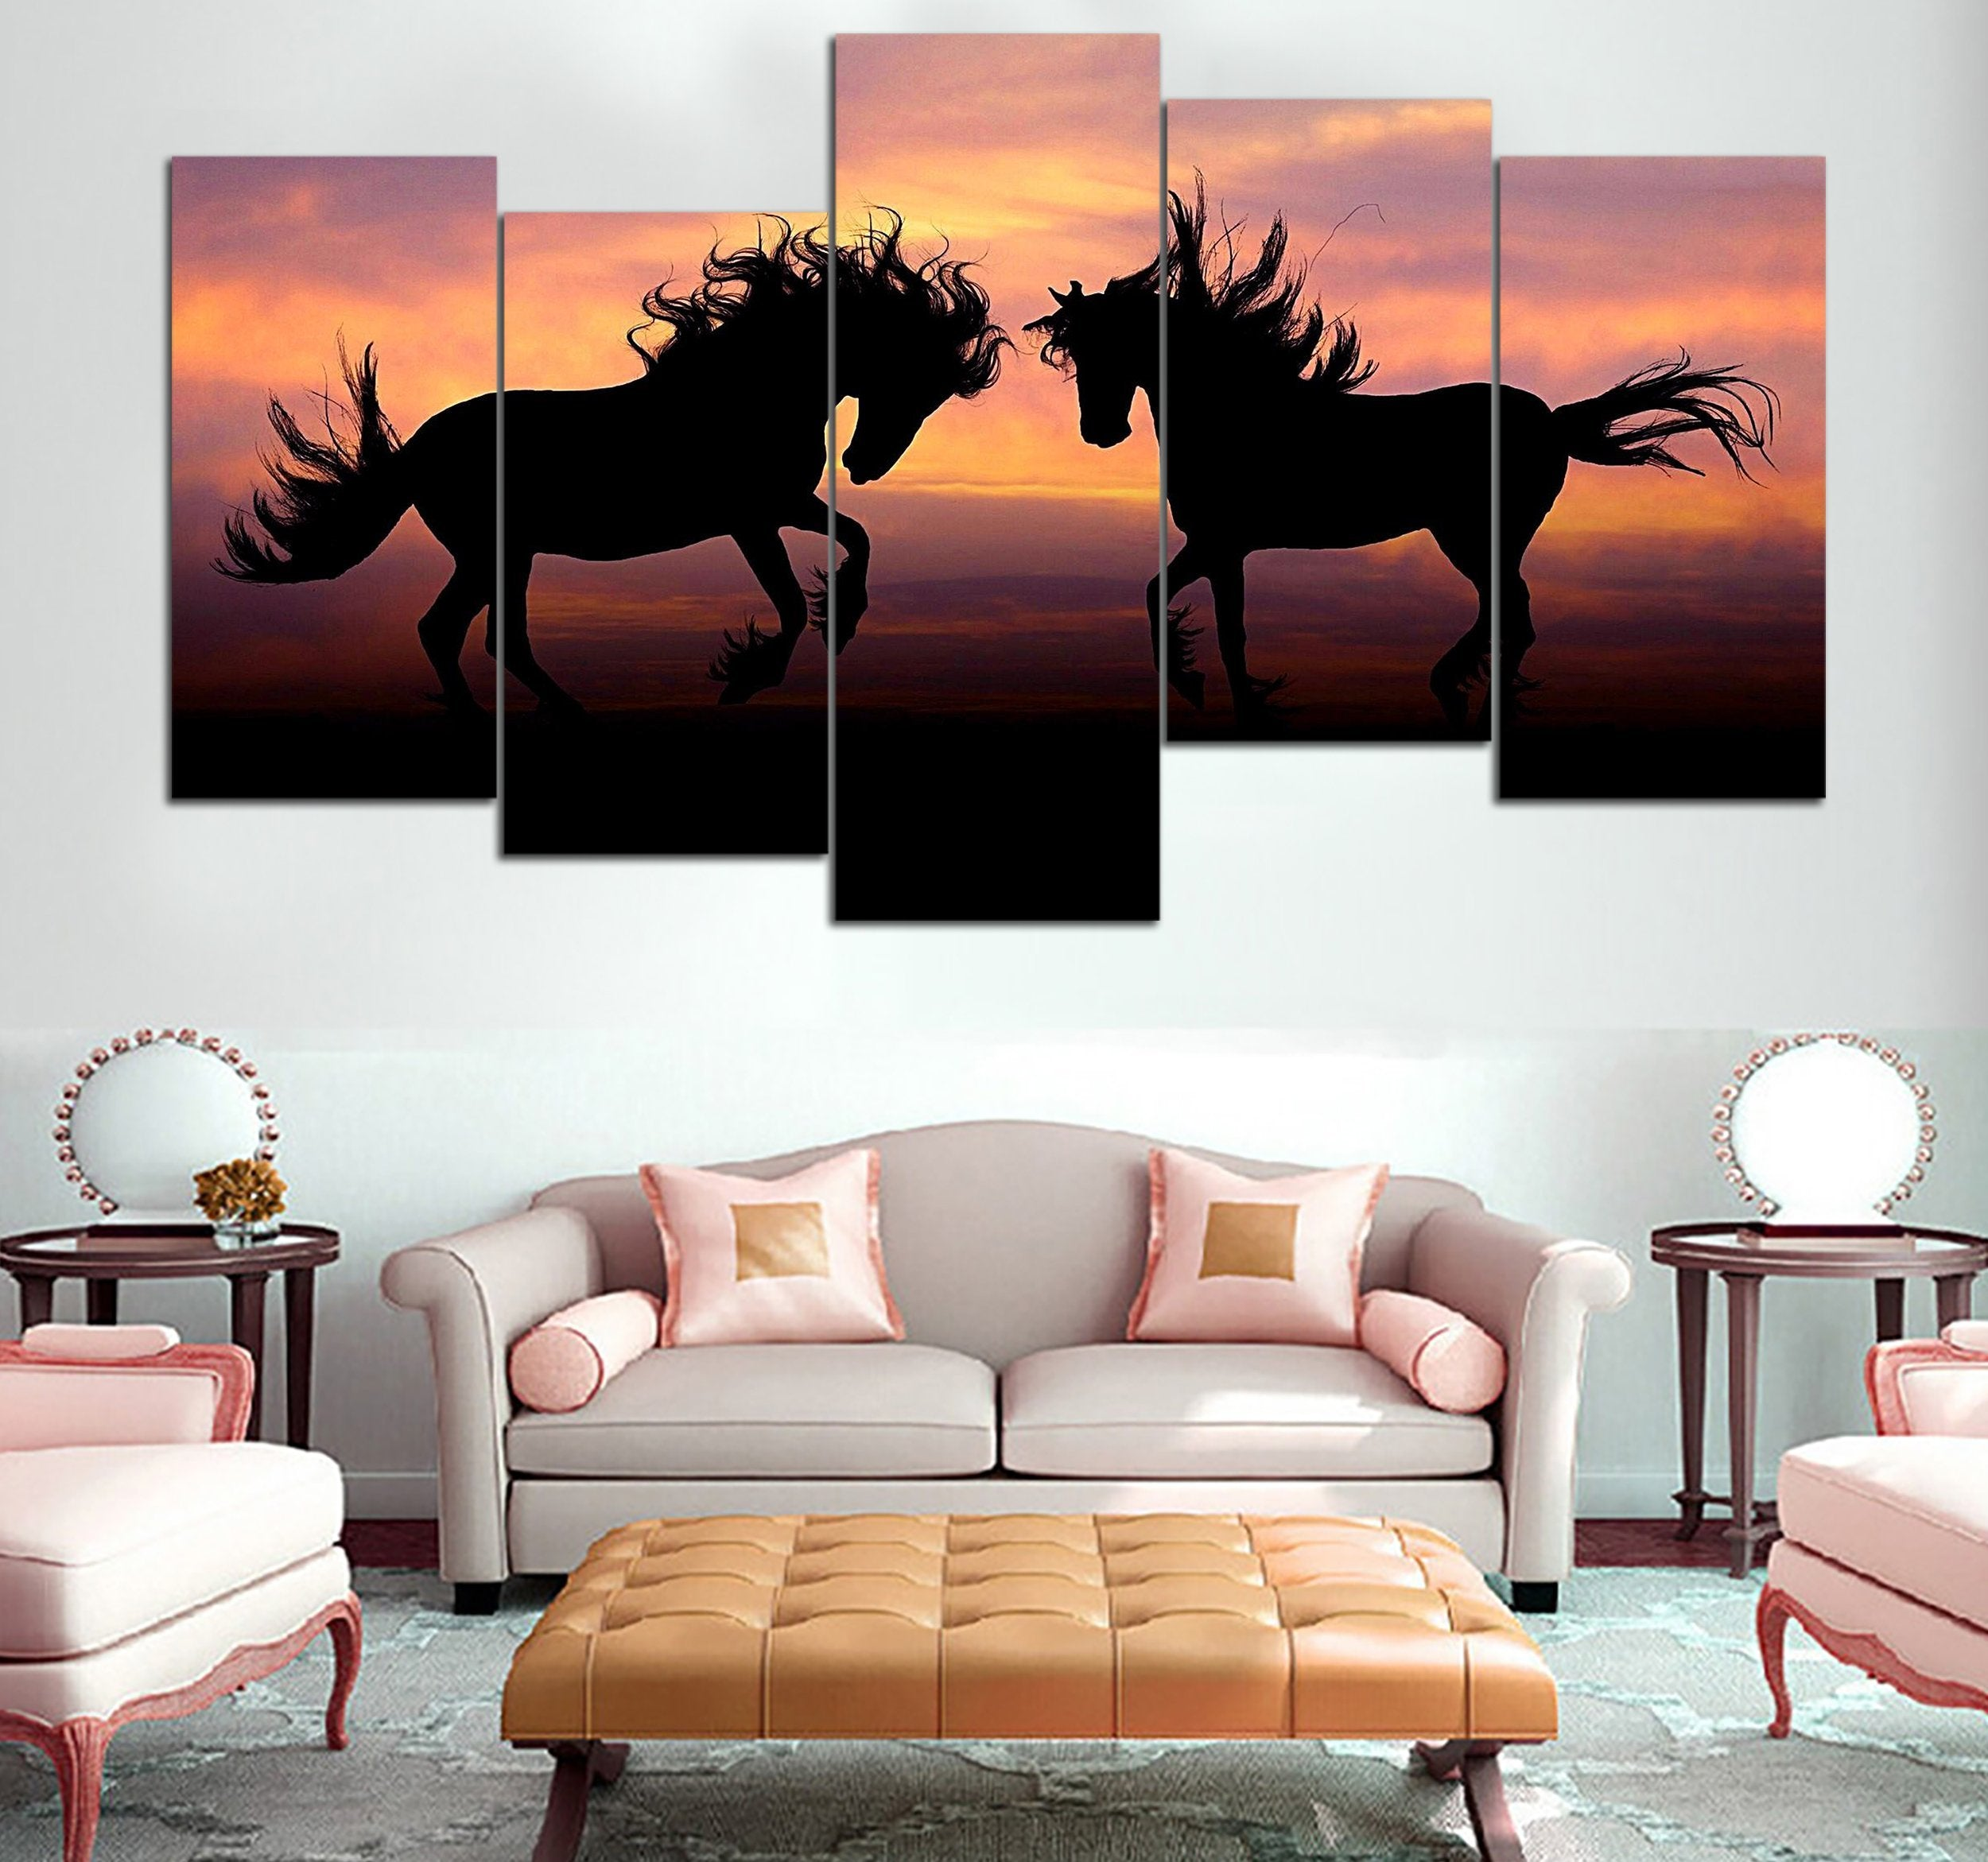 5-piece 2 Horse printed Canvas Wall Art Mode 51 GTL390308